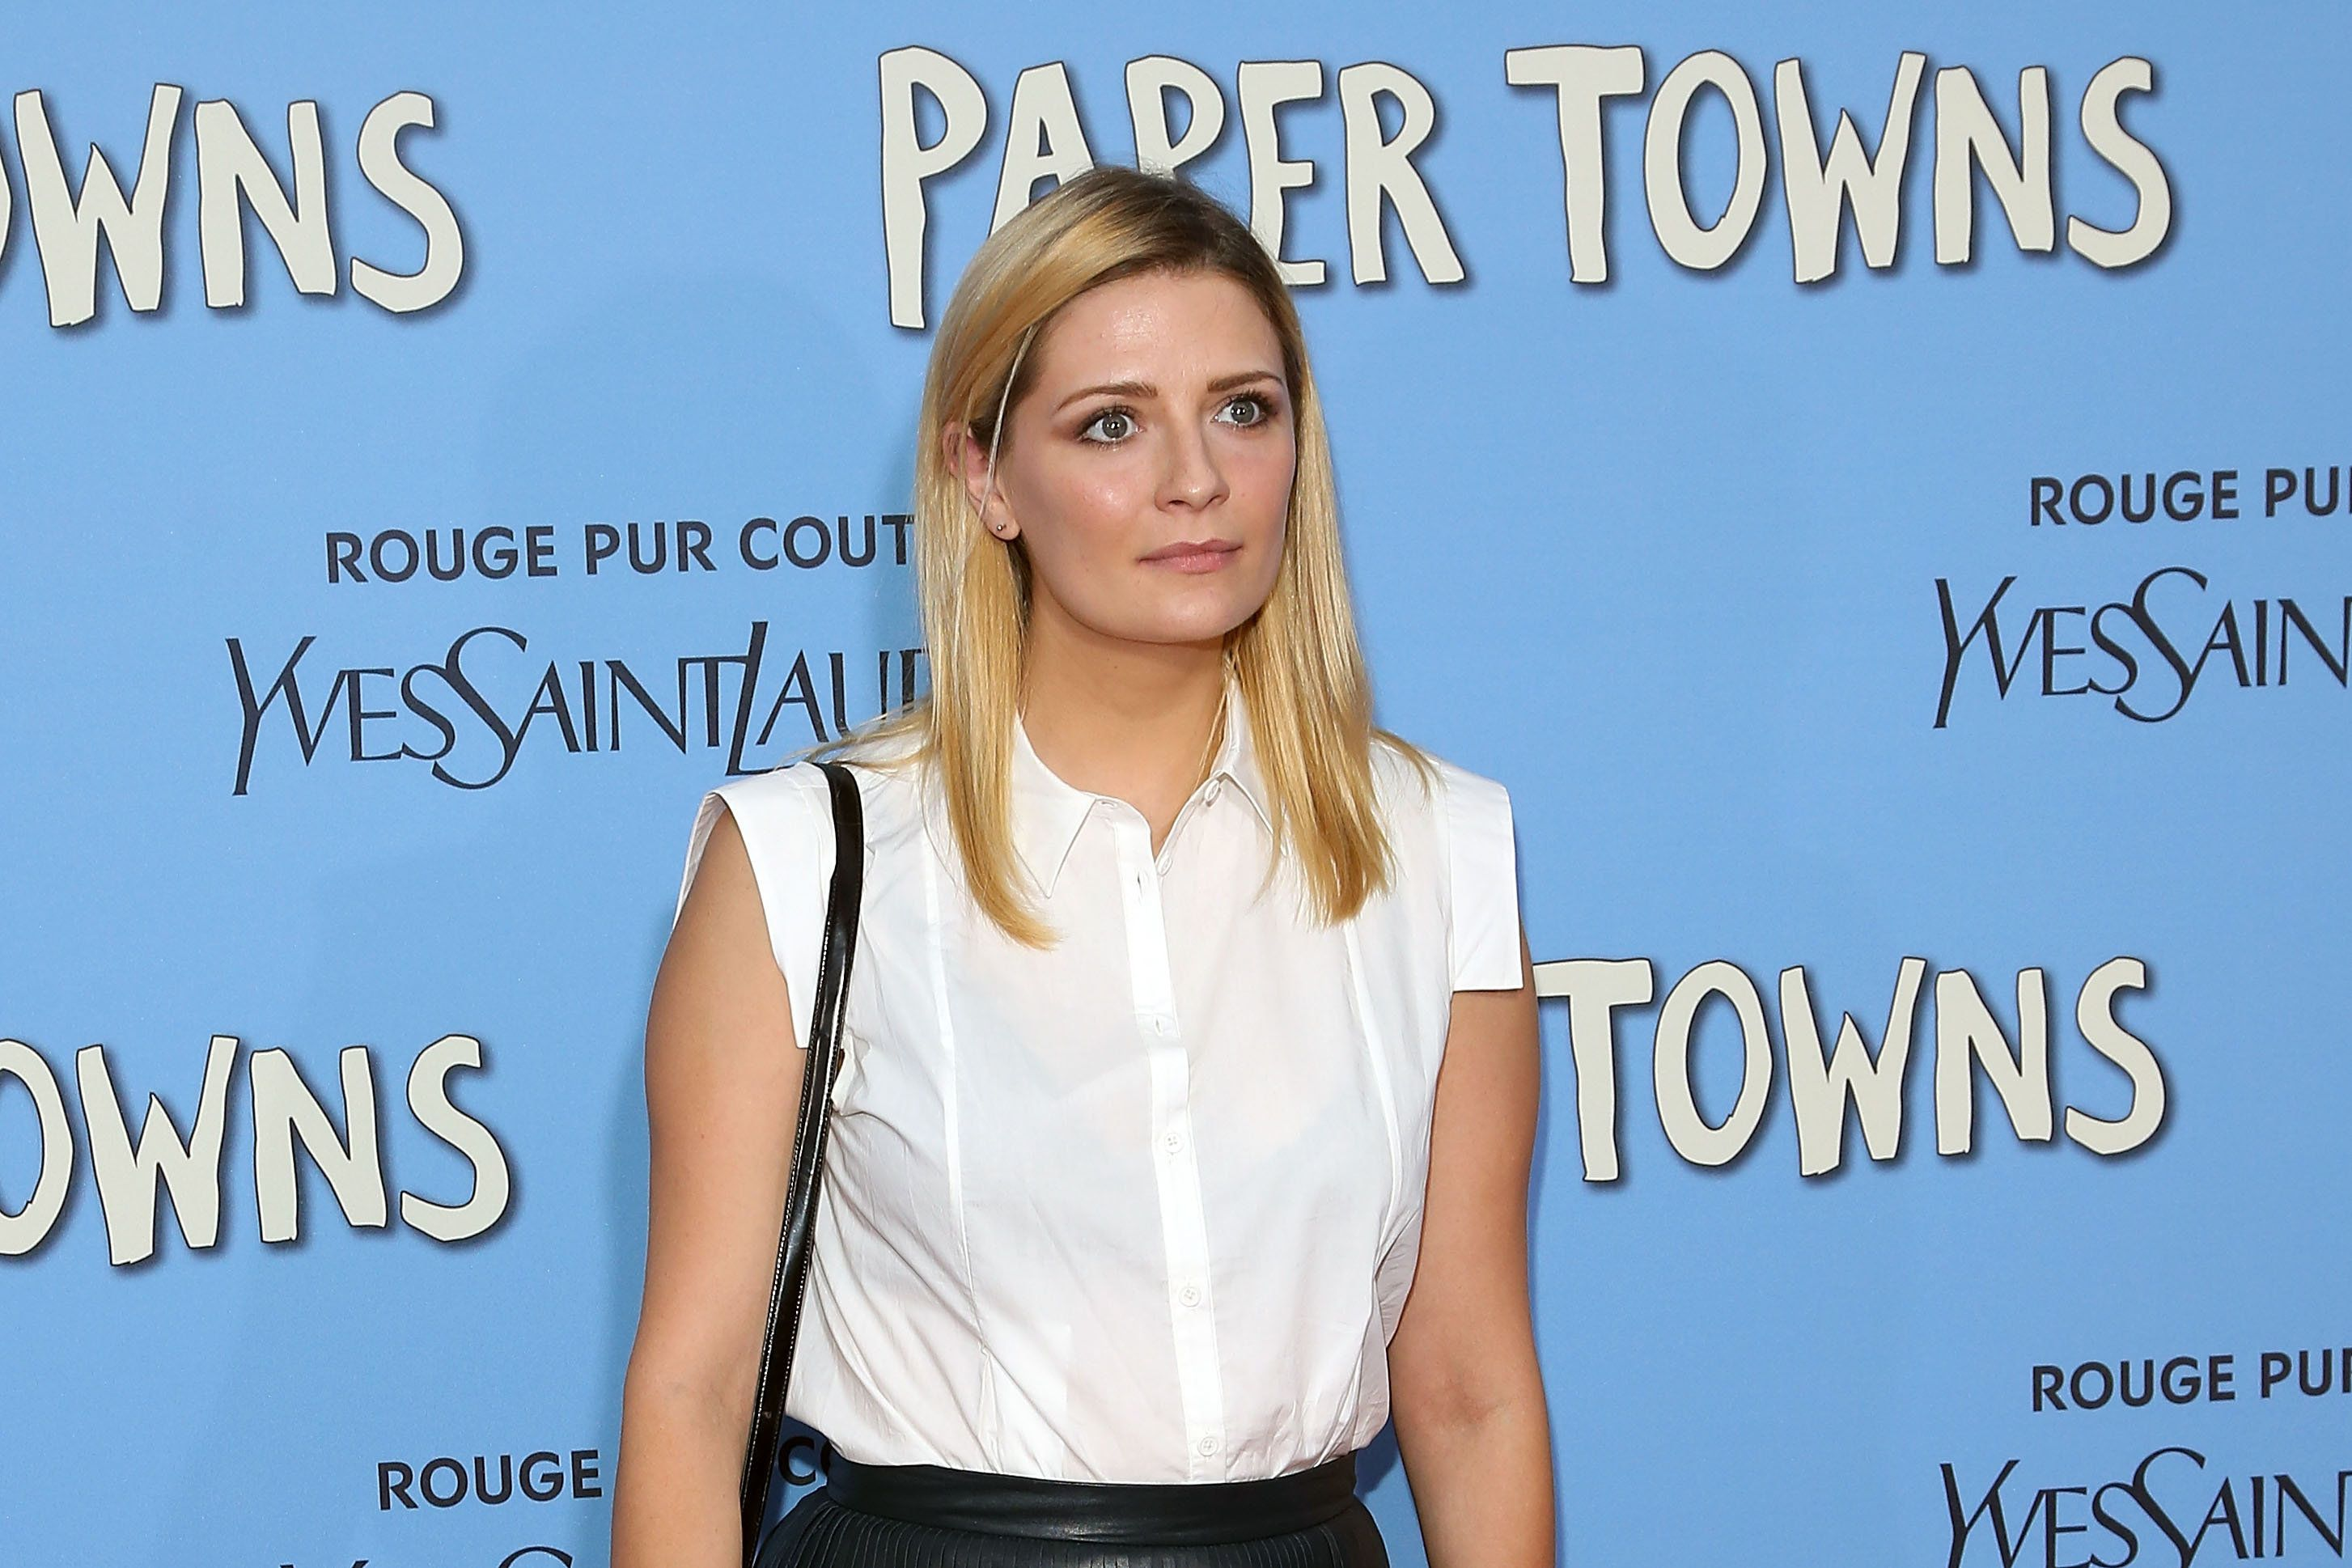 NEW YORK, NY - JULY 21:  Actress Mischa Barton attends the New York City premiere of 'Paper Towns' at AMC Loews Lincoln Square on July 21, 2015 in New York City.  (Photo by Taylor Hill/Getty Images)